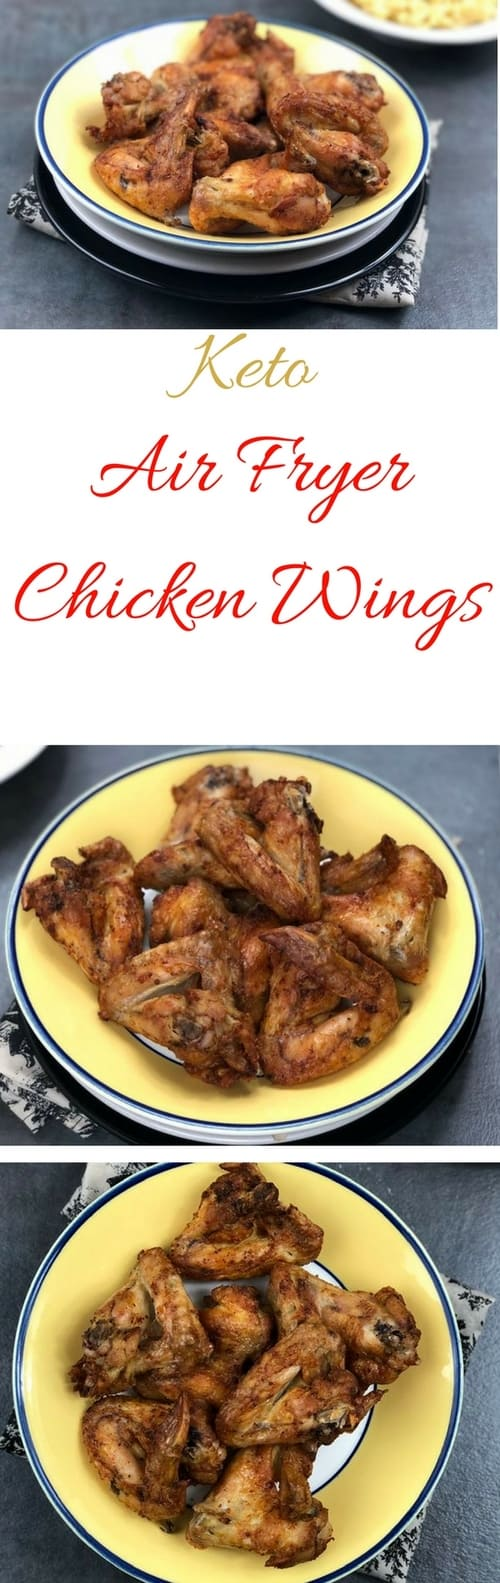 Keto Air Fryer Chicken Wings